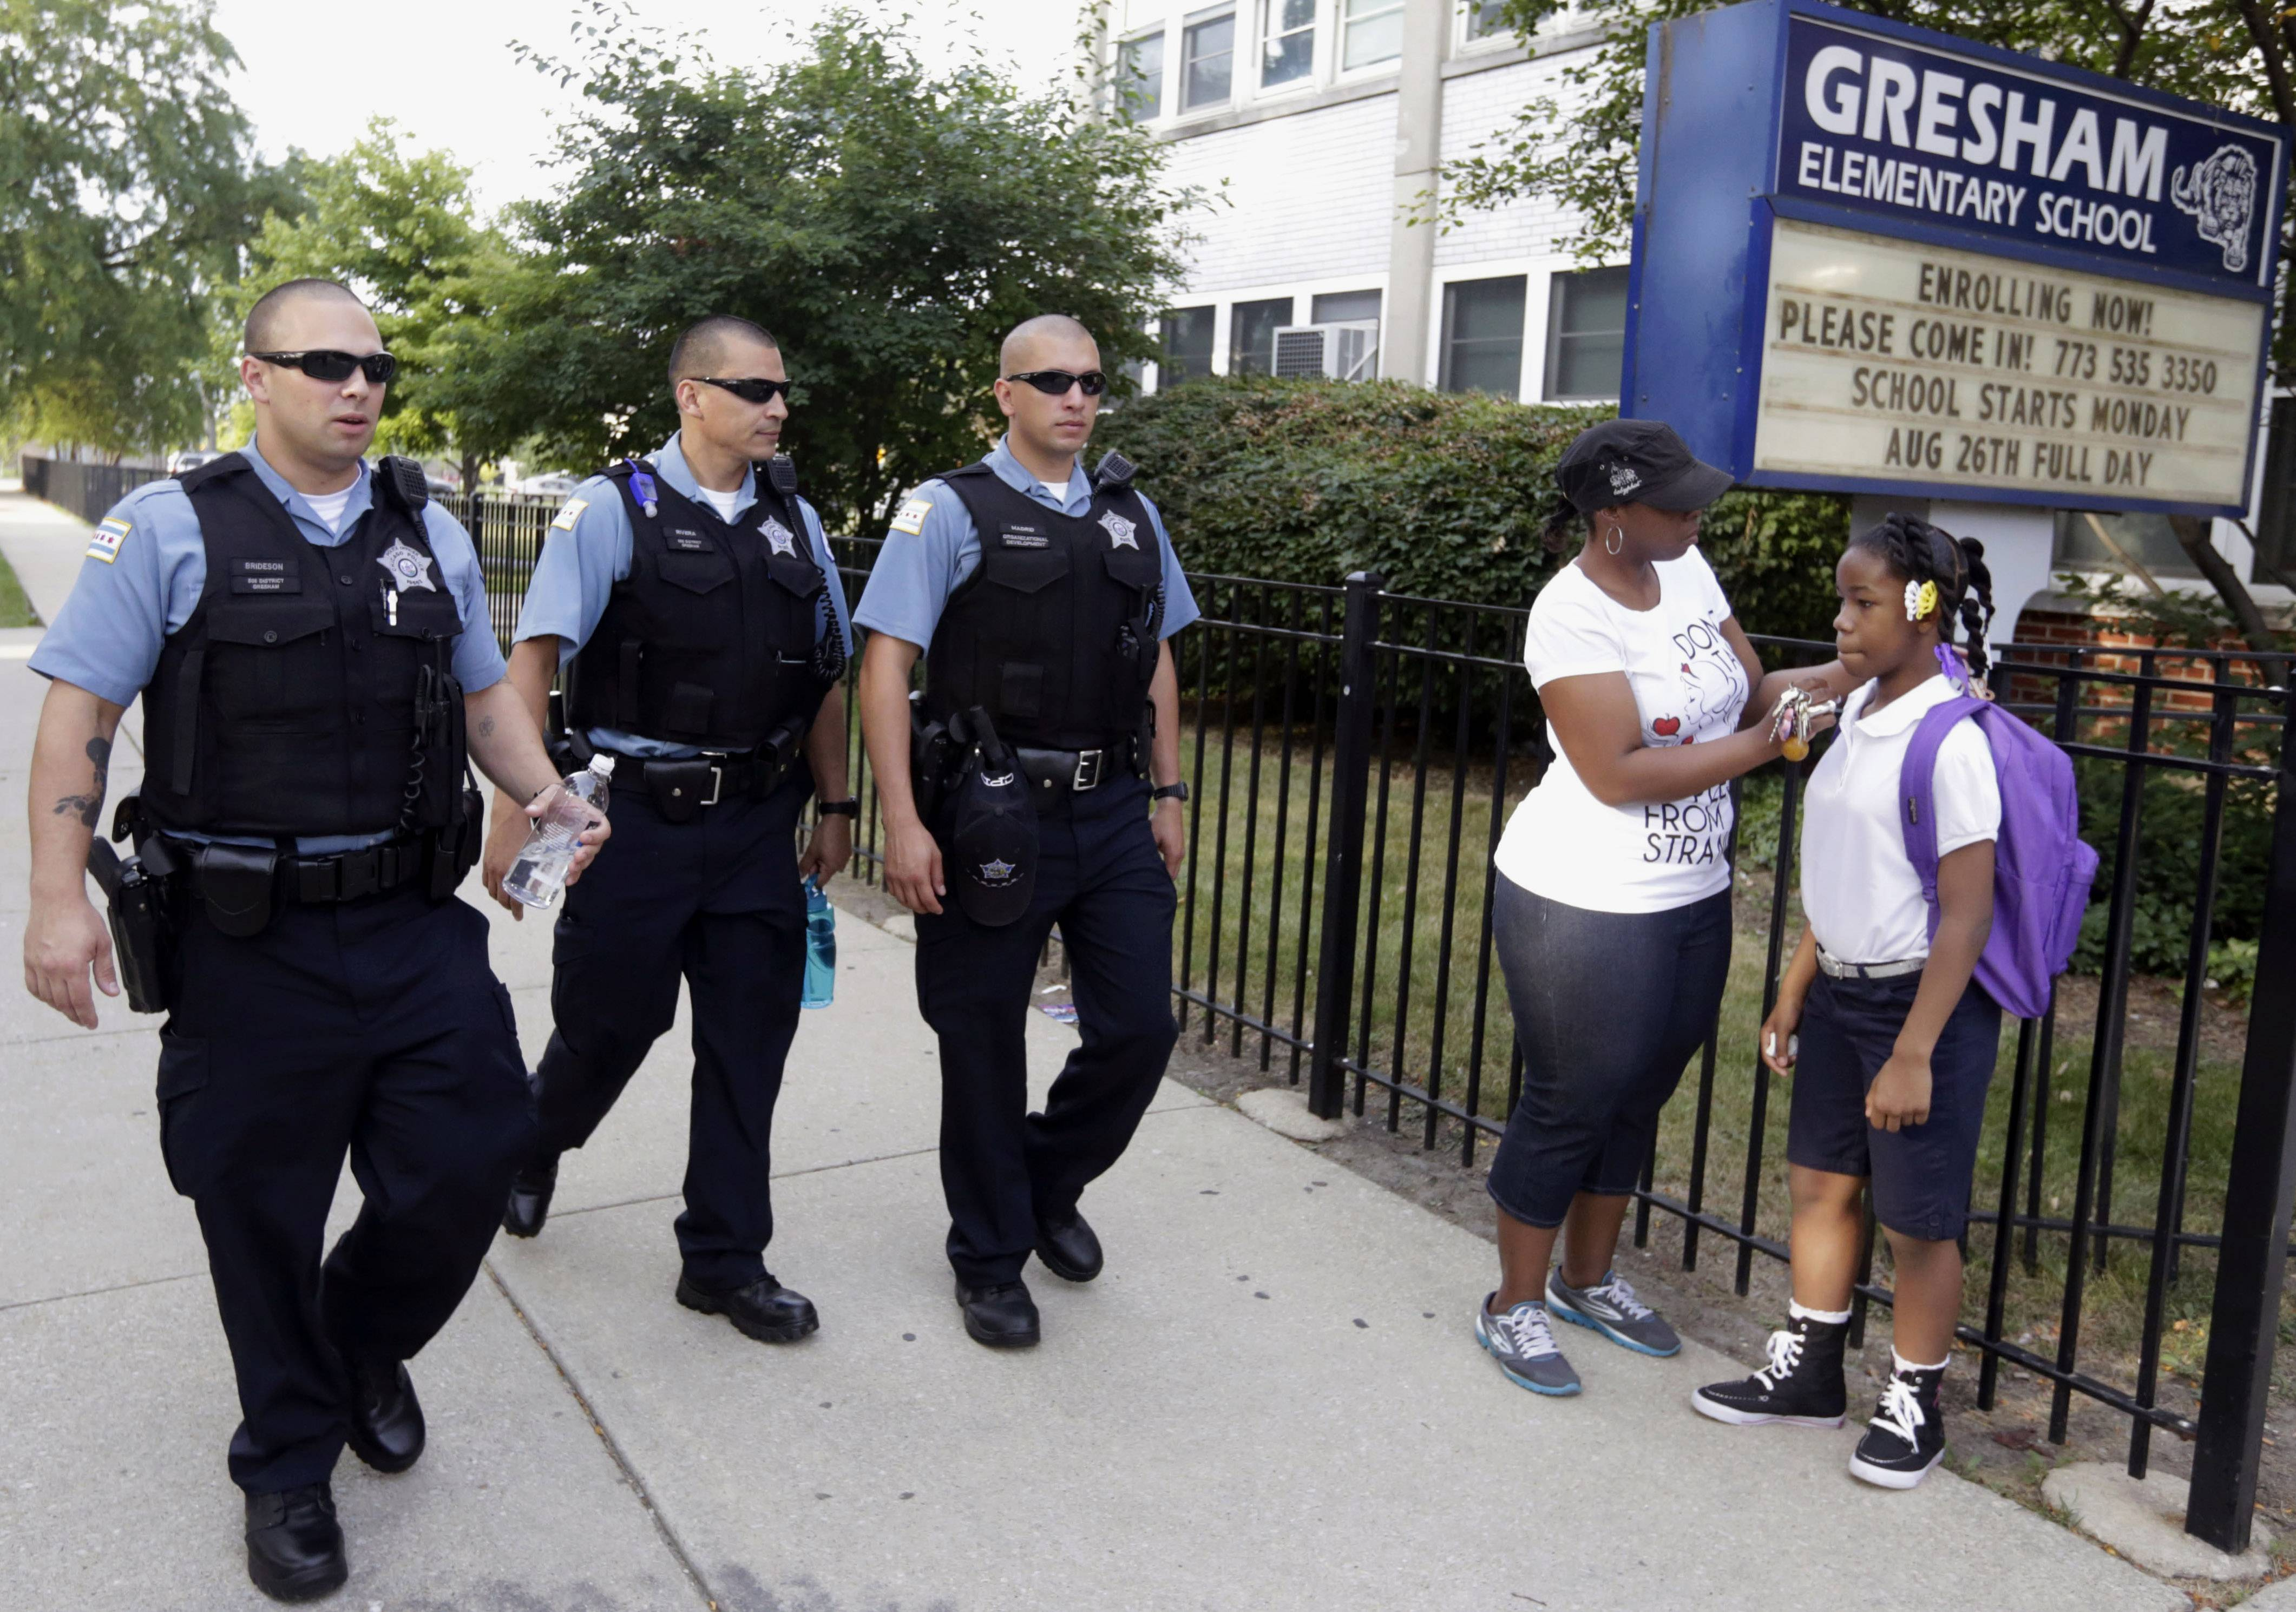 Chicago Police patrol the neighborhood at Gresham Elementary School on the first day of classes in Chicago.